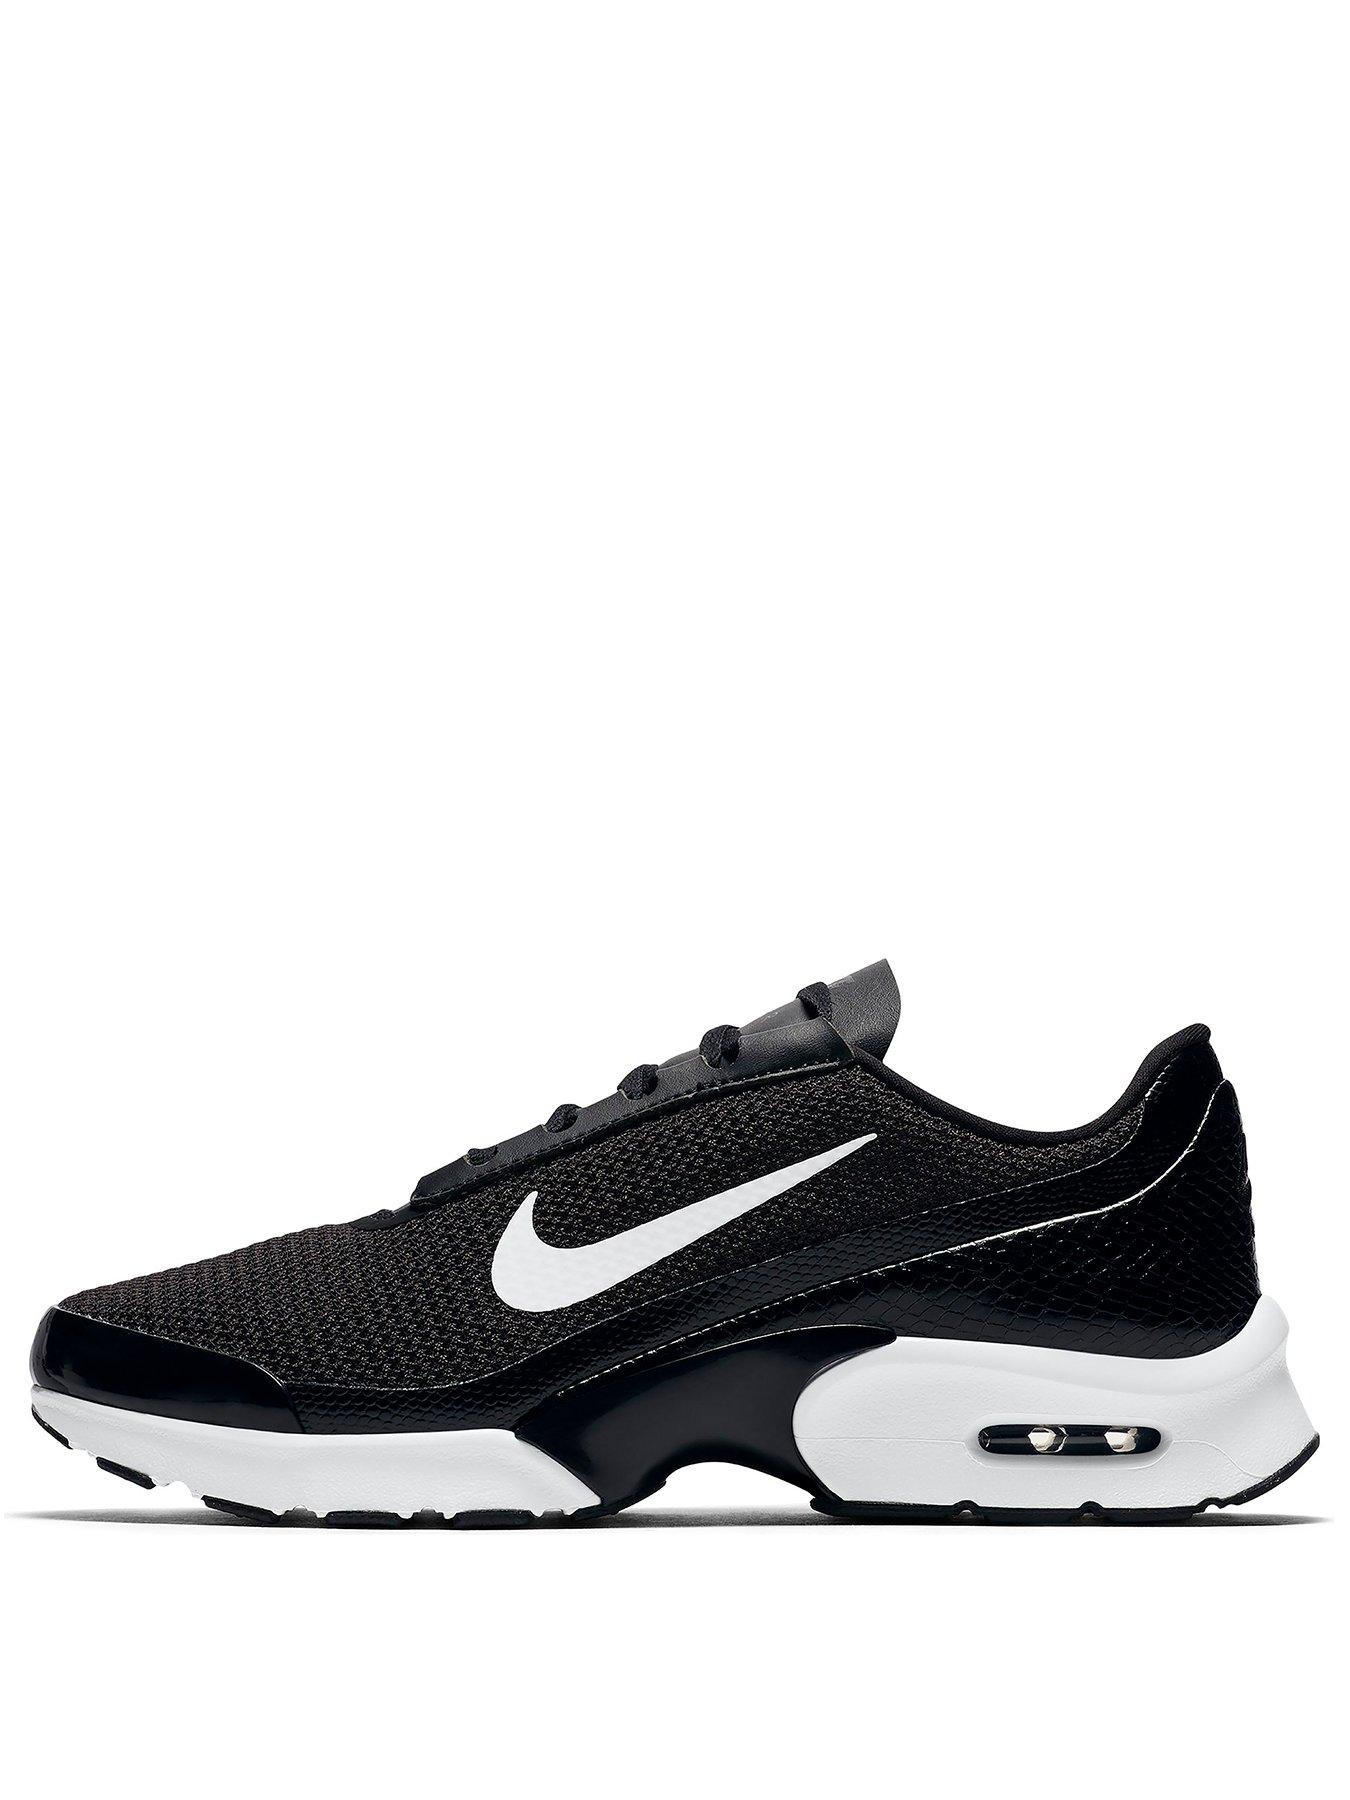 Nike Air Max Jewell - Black/White